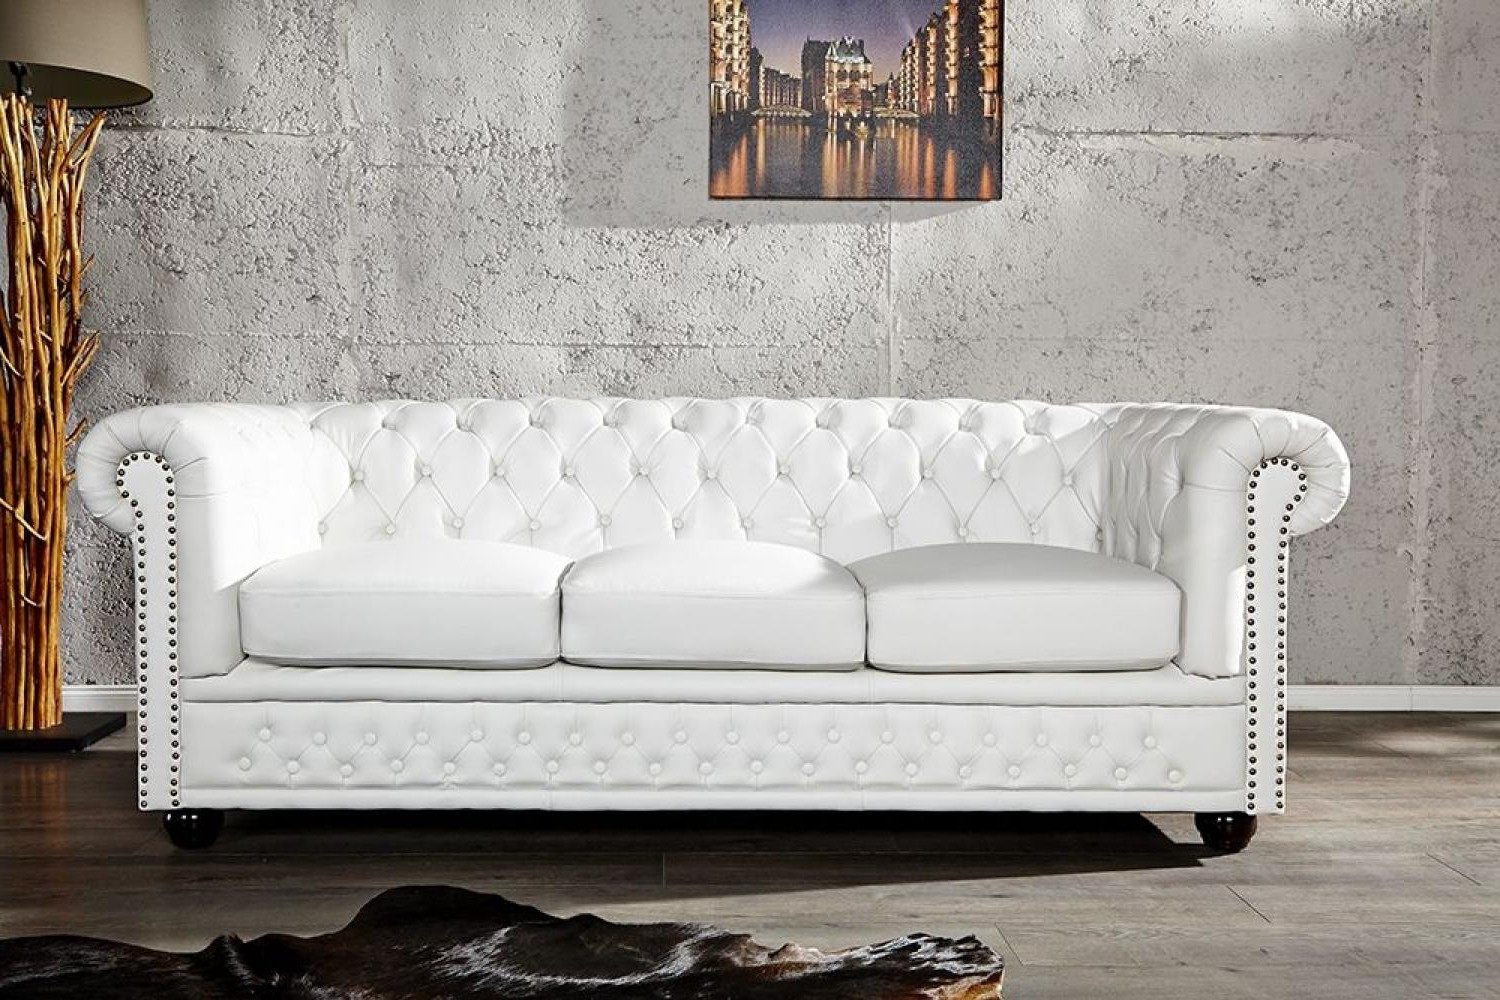 Canape chesterfield cuir blanc 3 places canap id es for Canape chesterfield cuir blanc